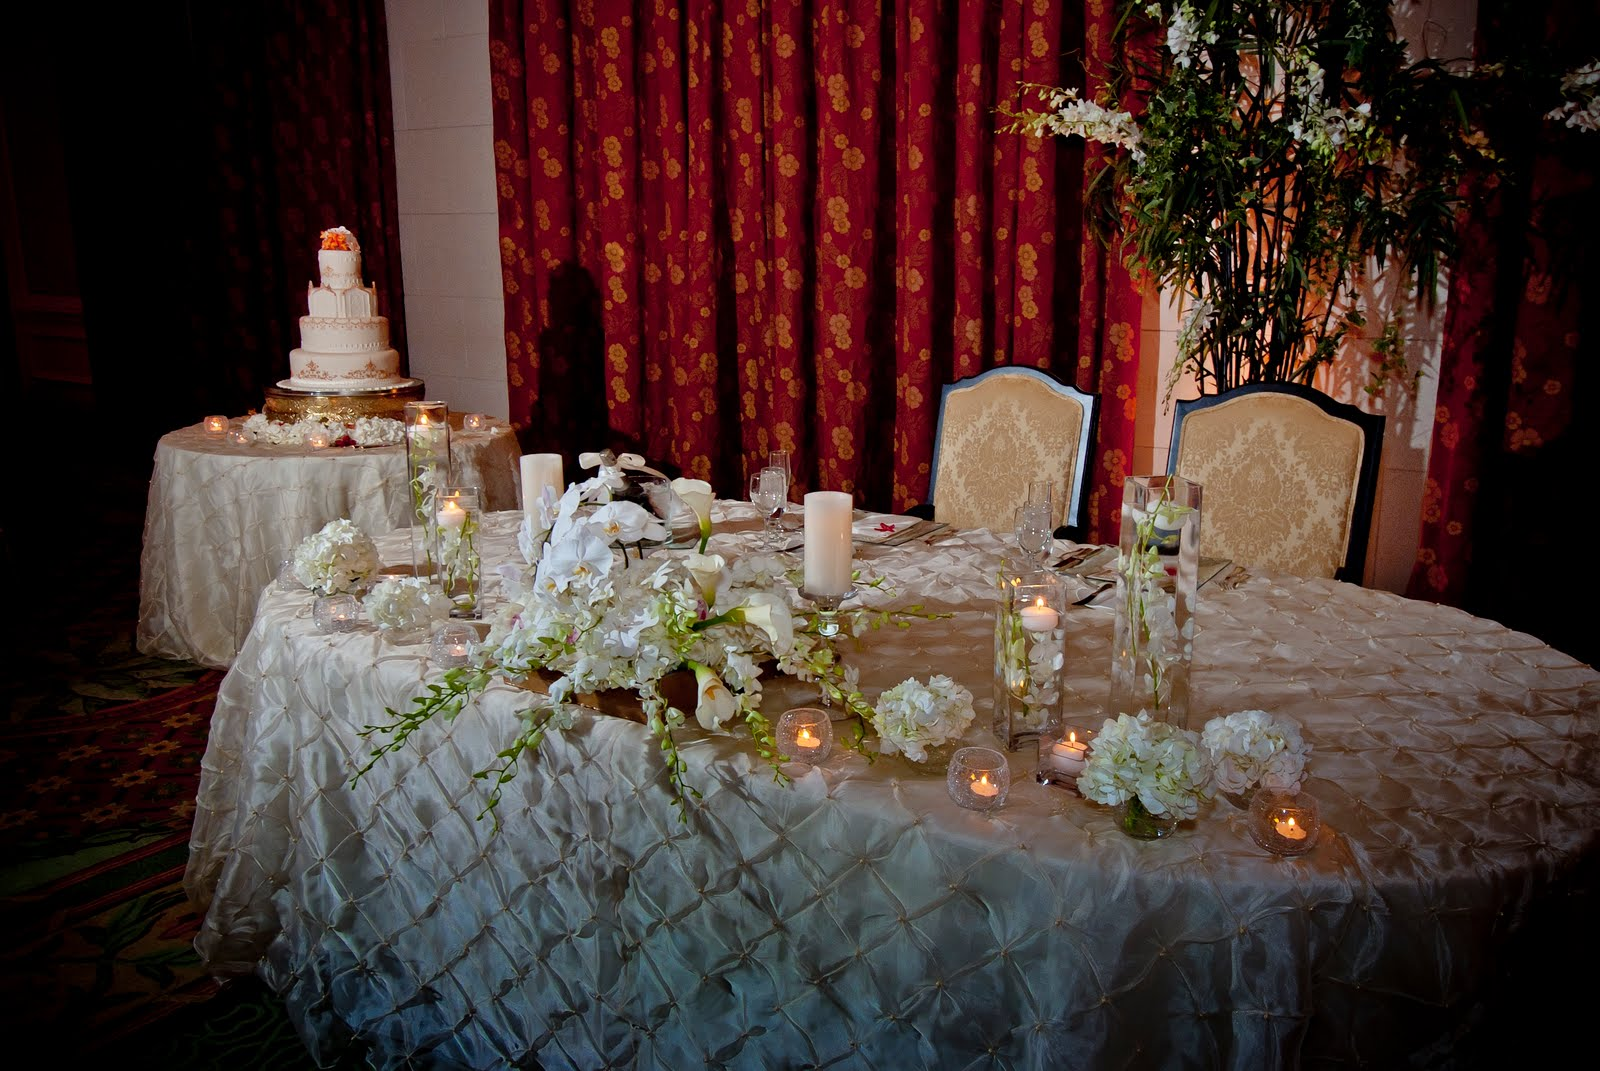 Decoration For Bride And Groom Table .